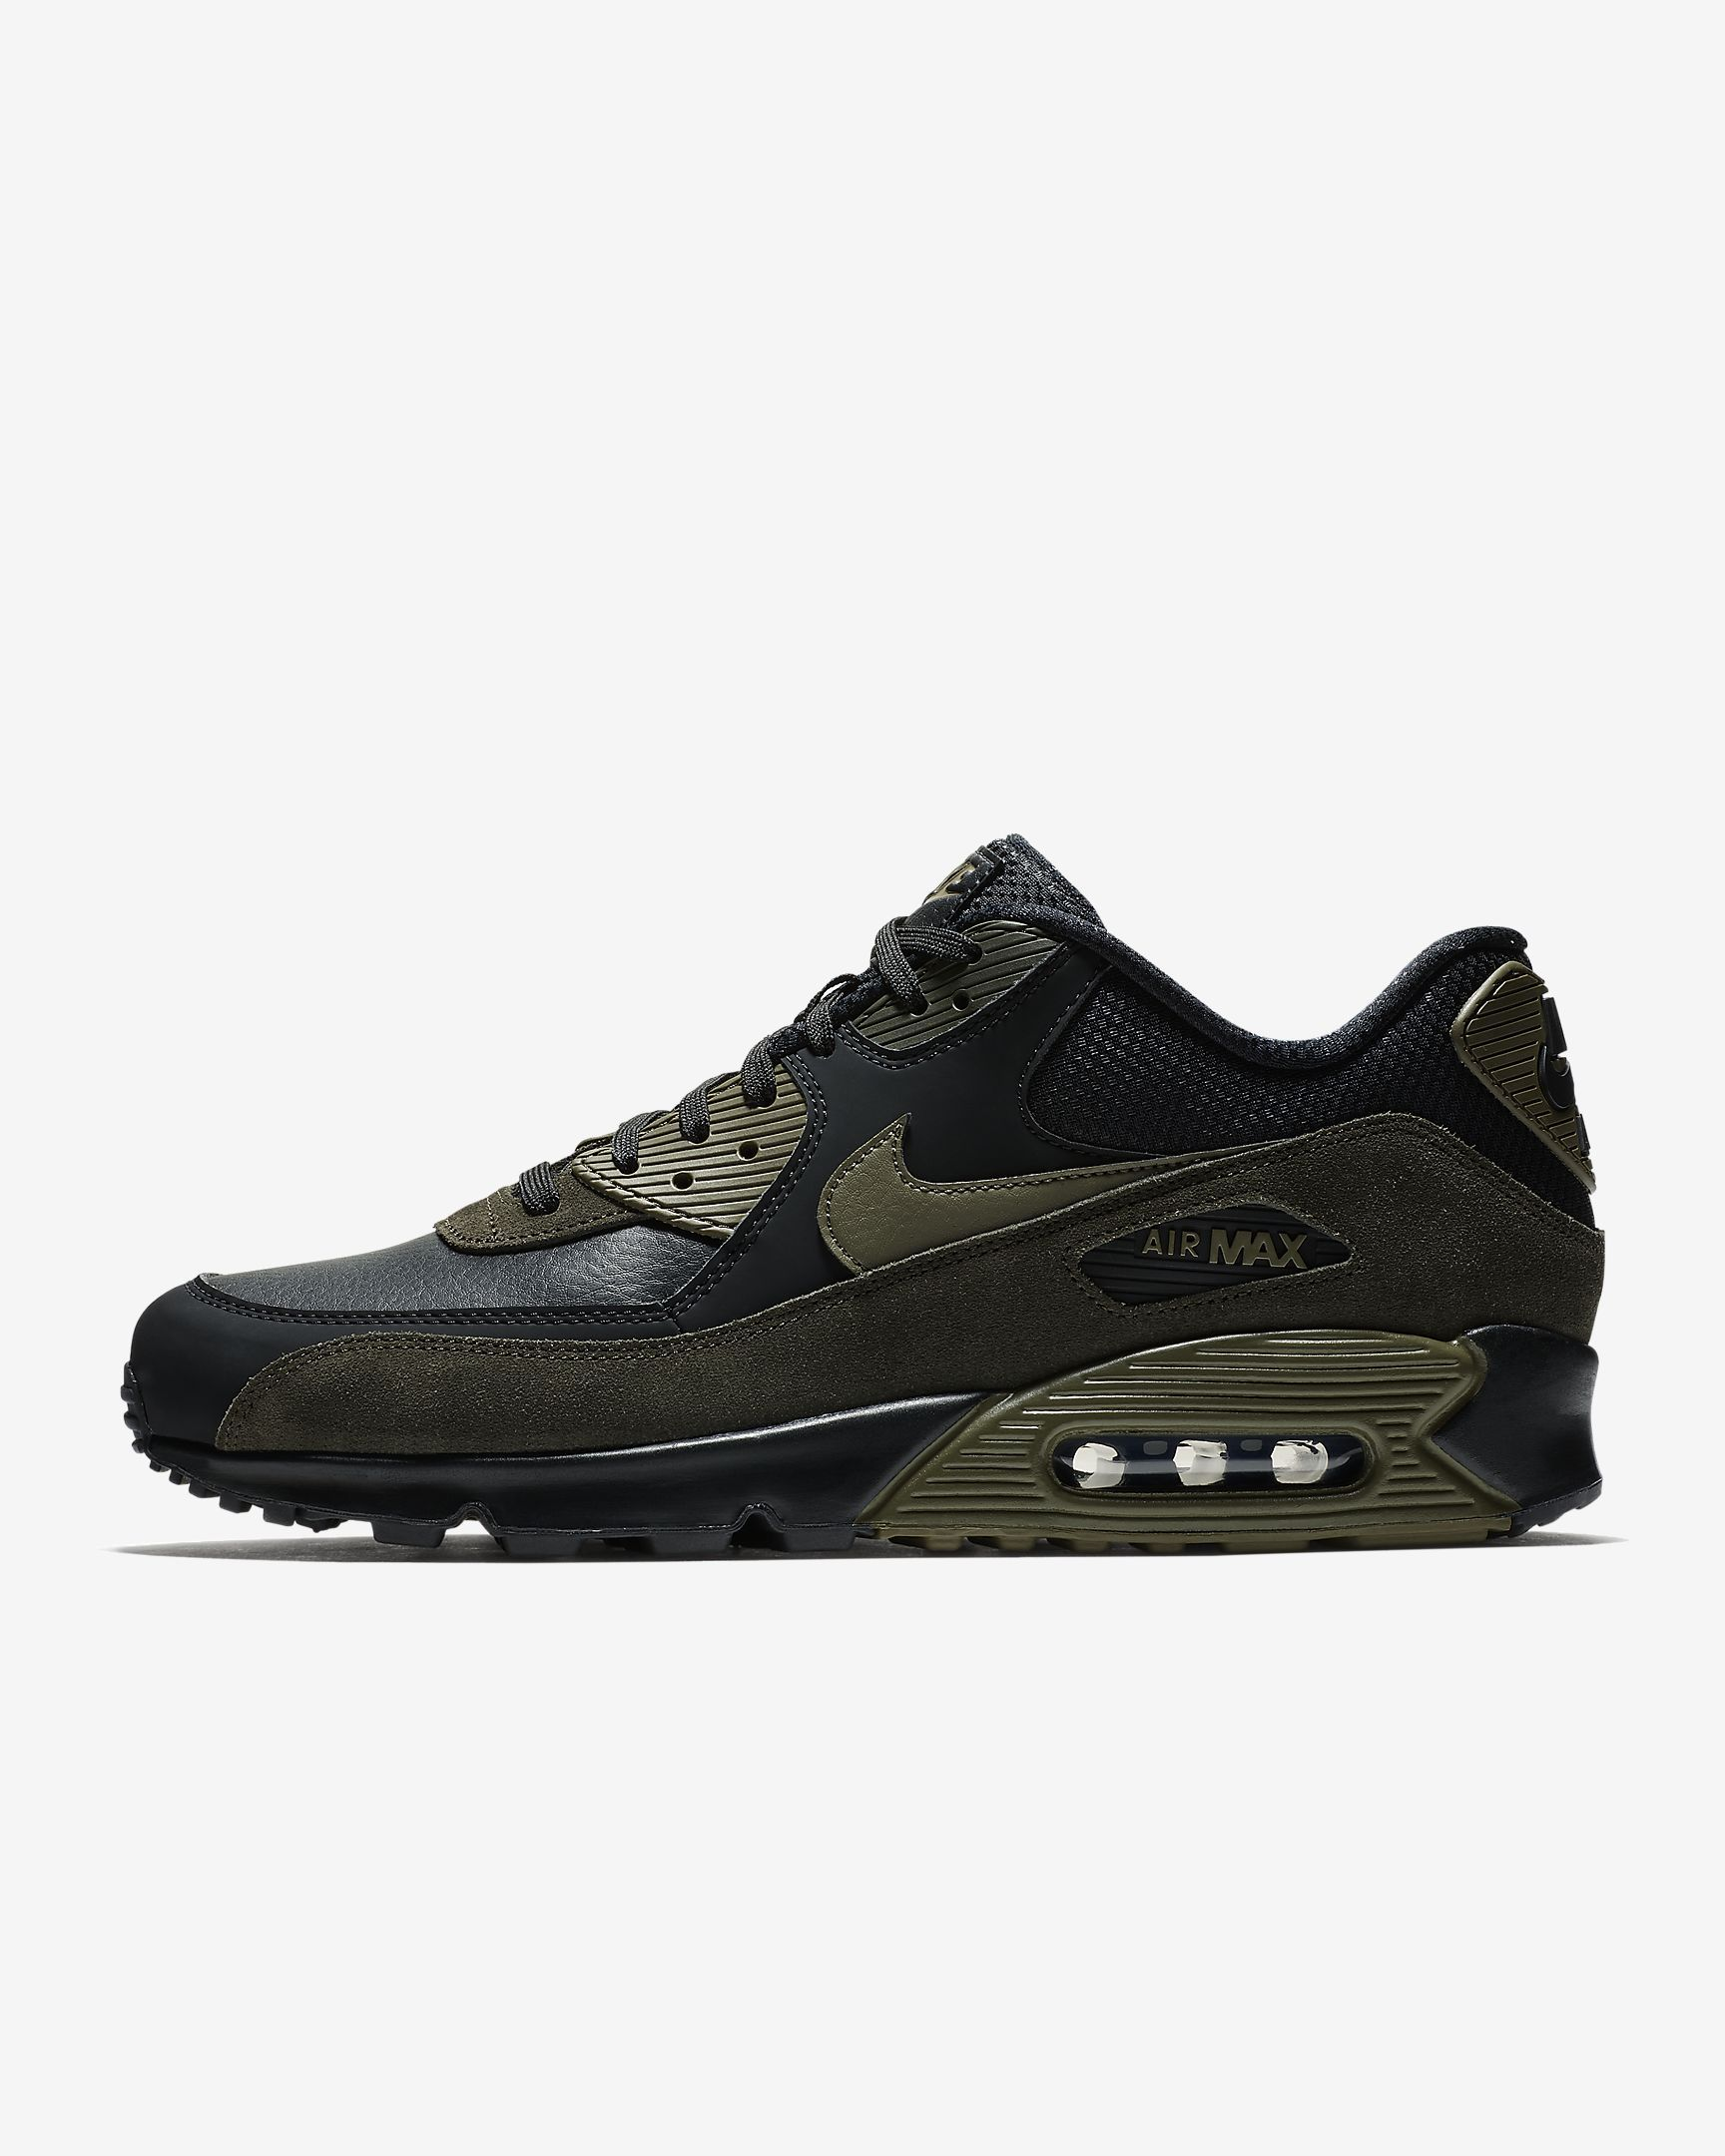 save off 32619 5f91a Buty męskie Nike Air Max 90 Leather w 2019 | Sneakers | Air max 90 ...